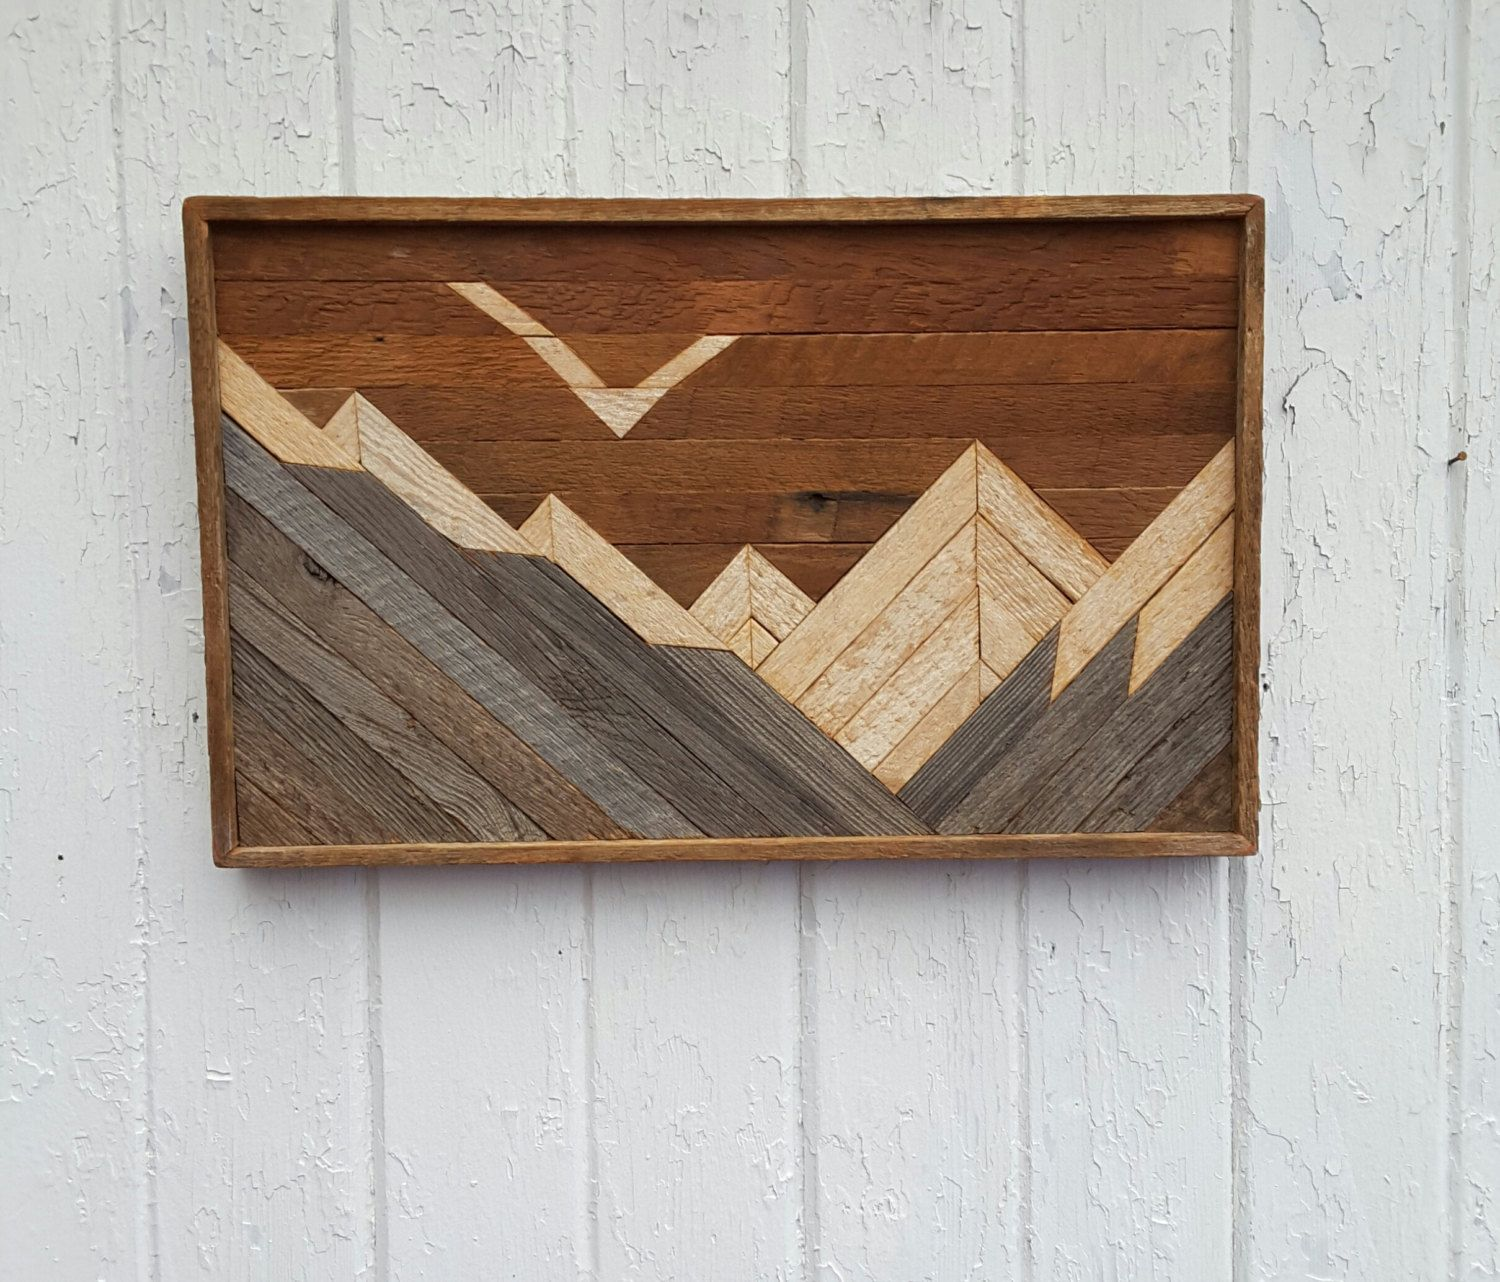 Wood Decorative Wall Art Reclaimed Wood Wall Art Mountains Decor Lath Art Olive